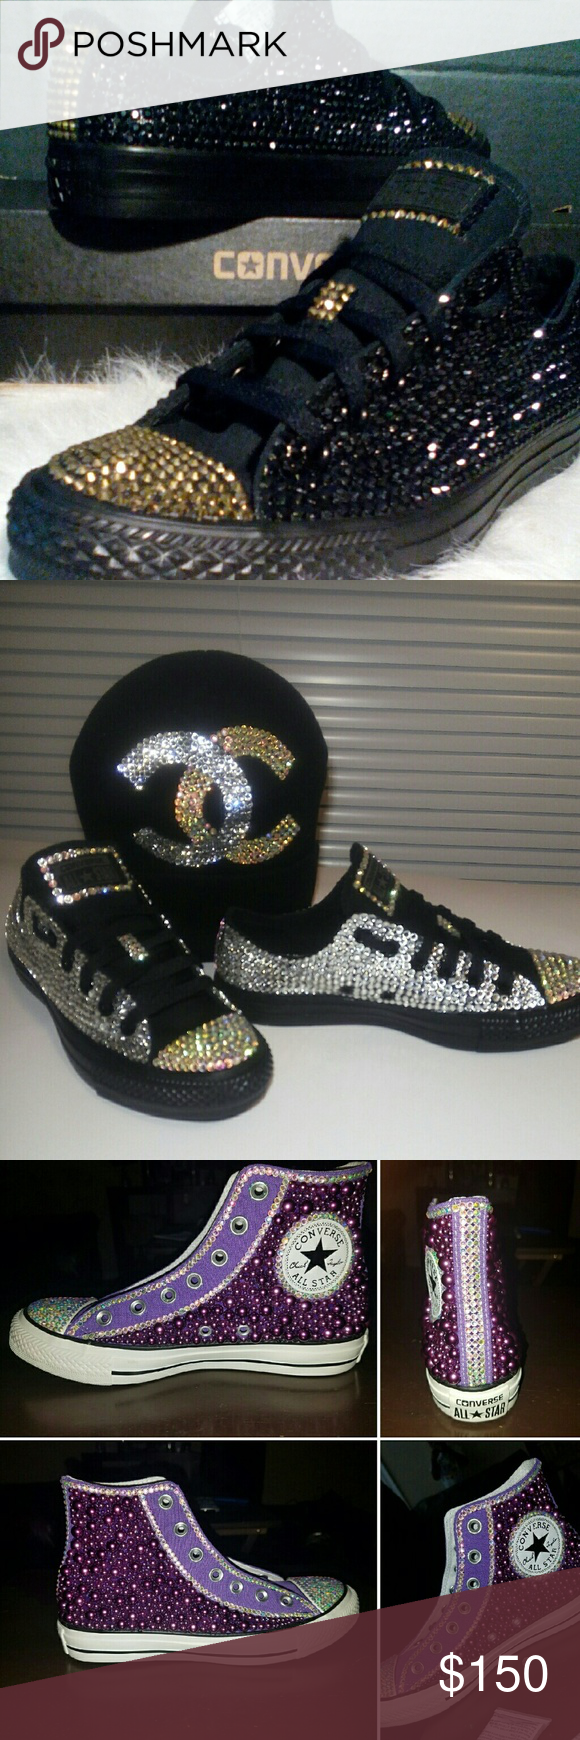 Adult Custom Bling Converse Converses are made to order in